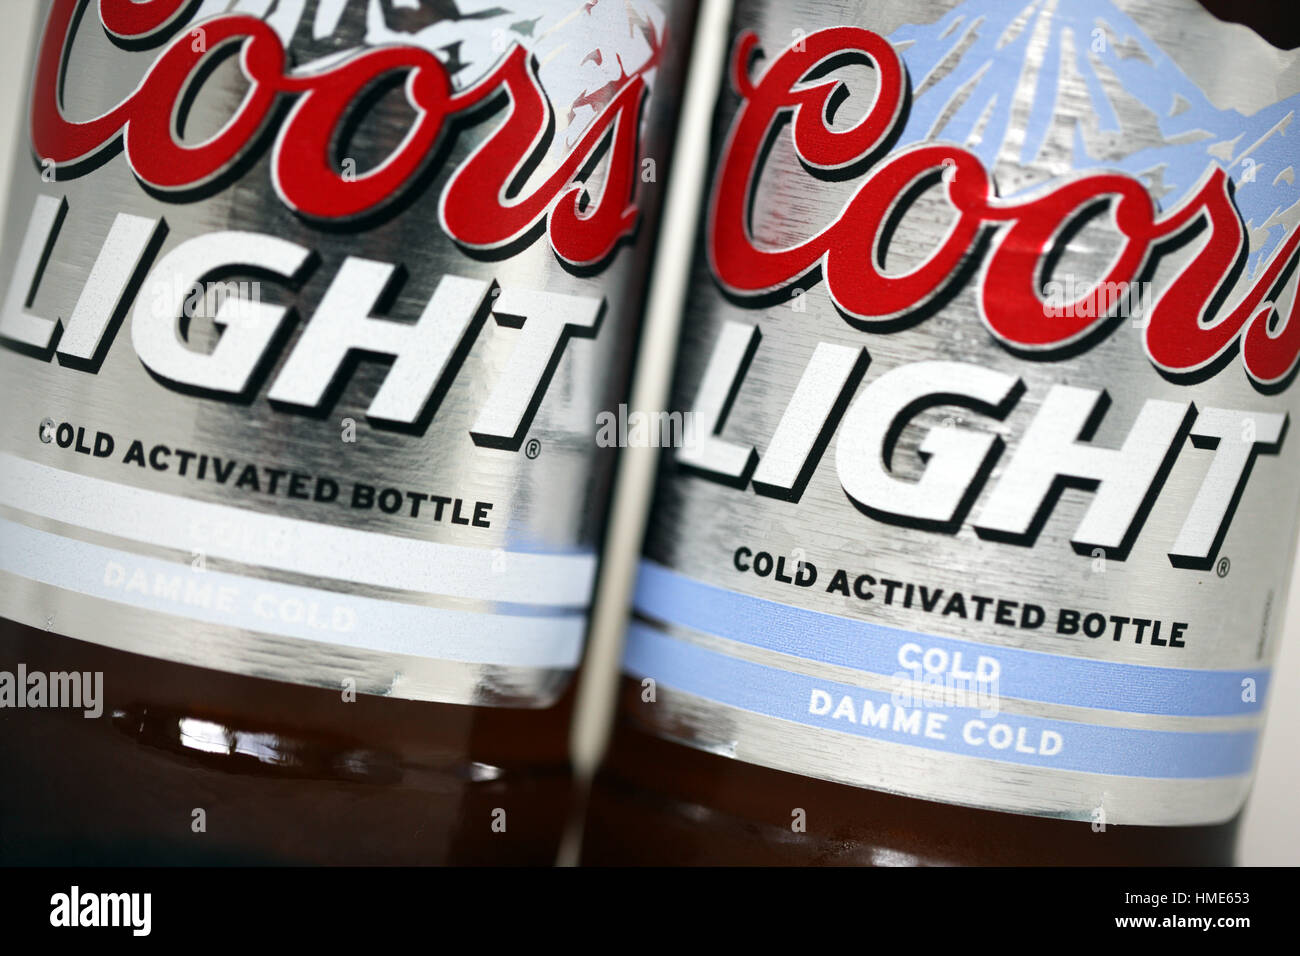 Coors Light Can Expiration Date Location